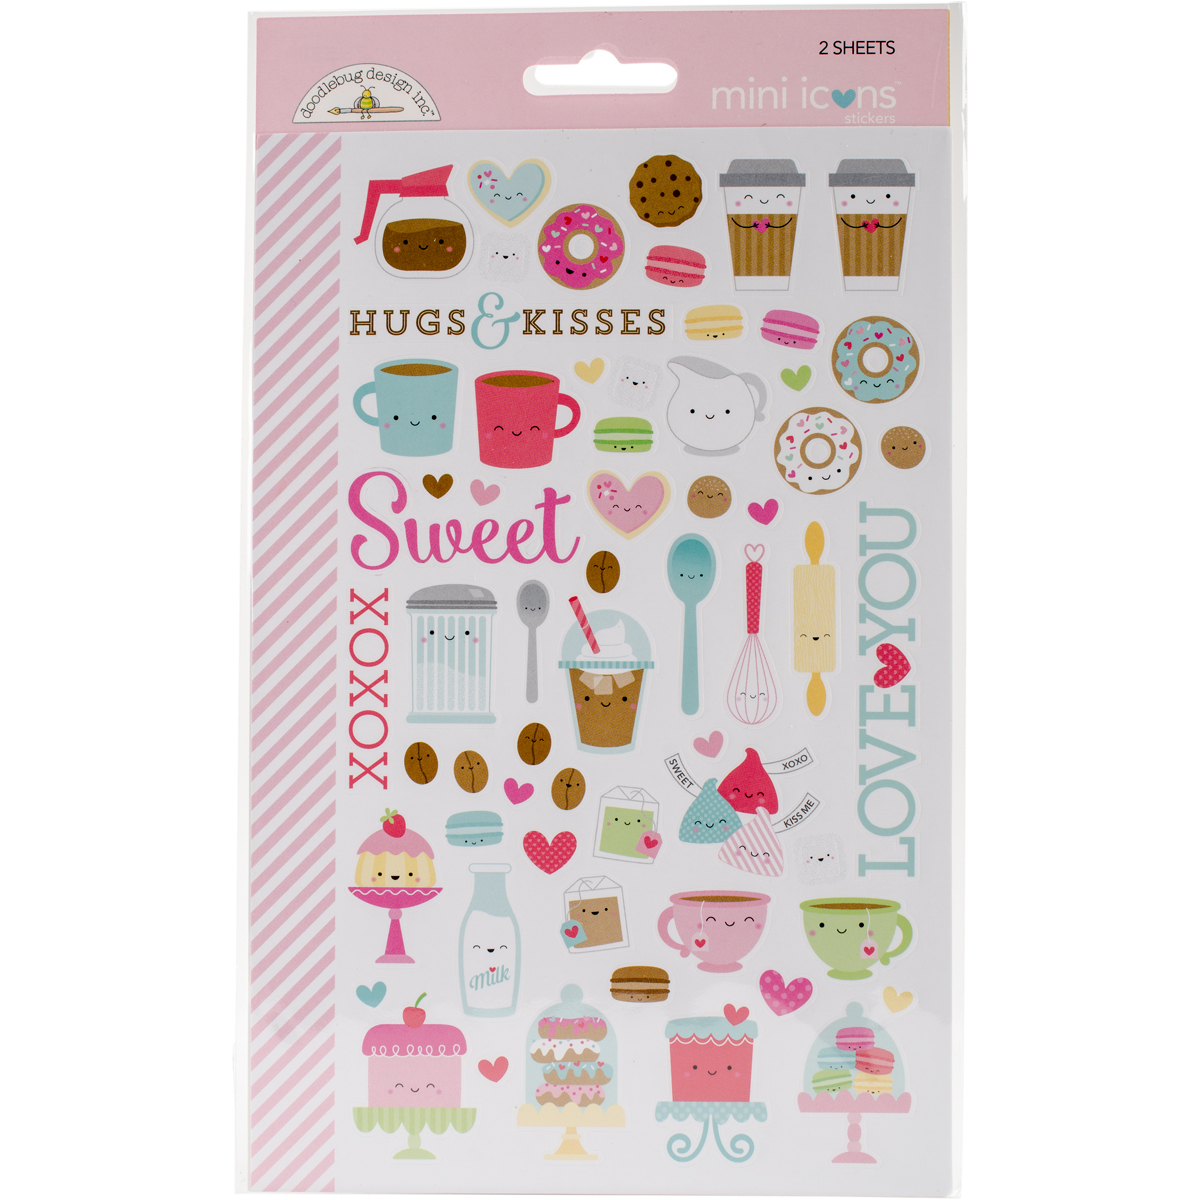 Cream & Sugar Stickers-Mini Icons